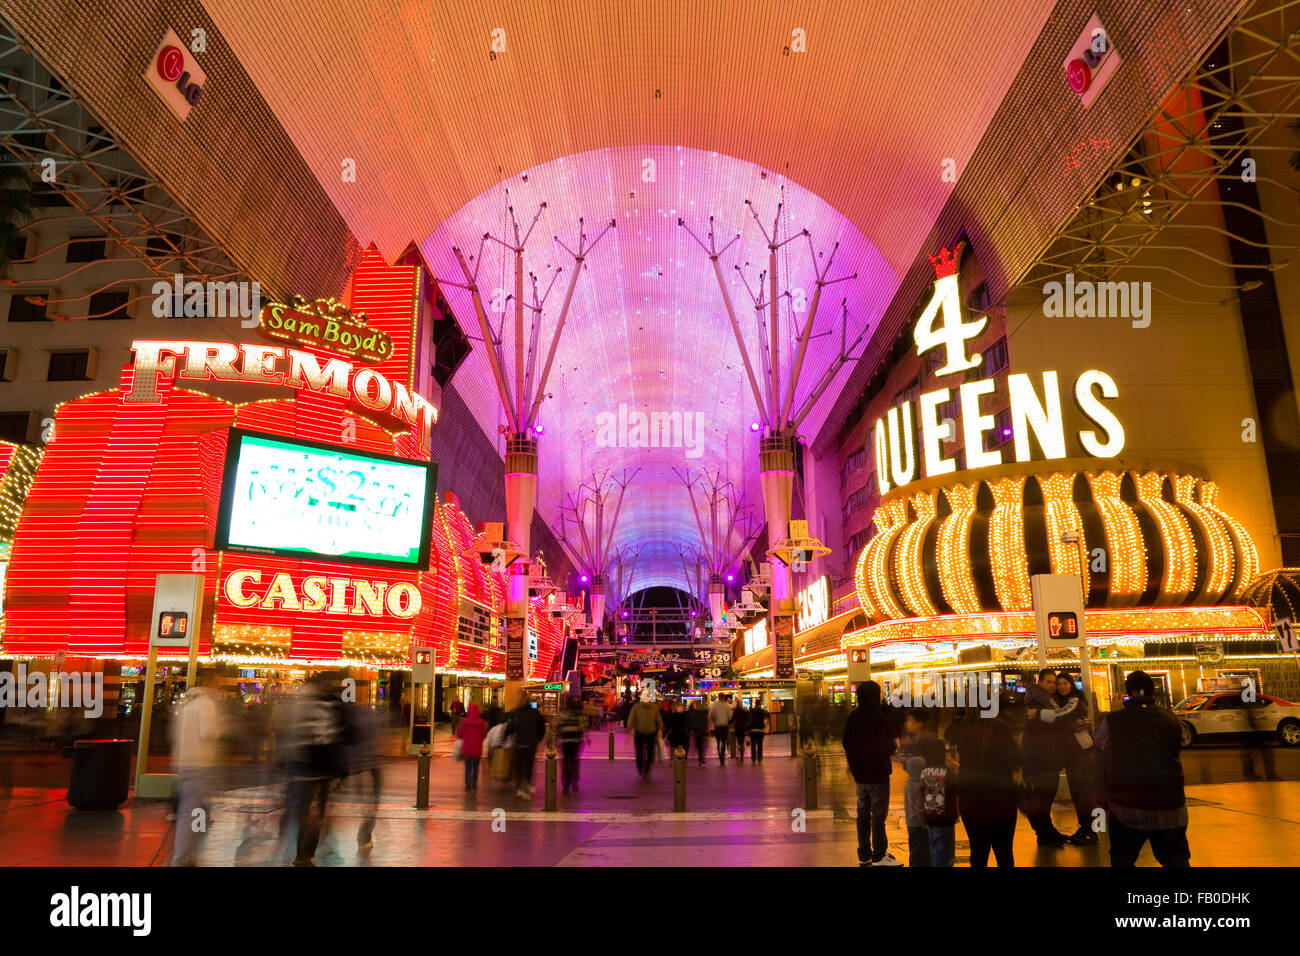 Las Vegas at night Stock Photo